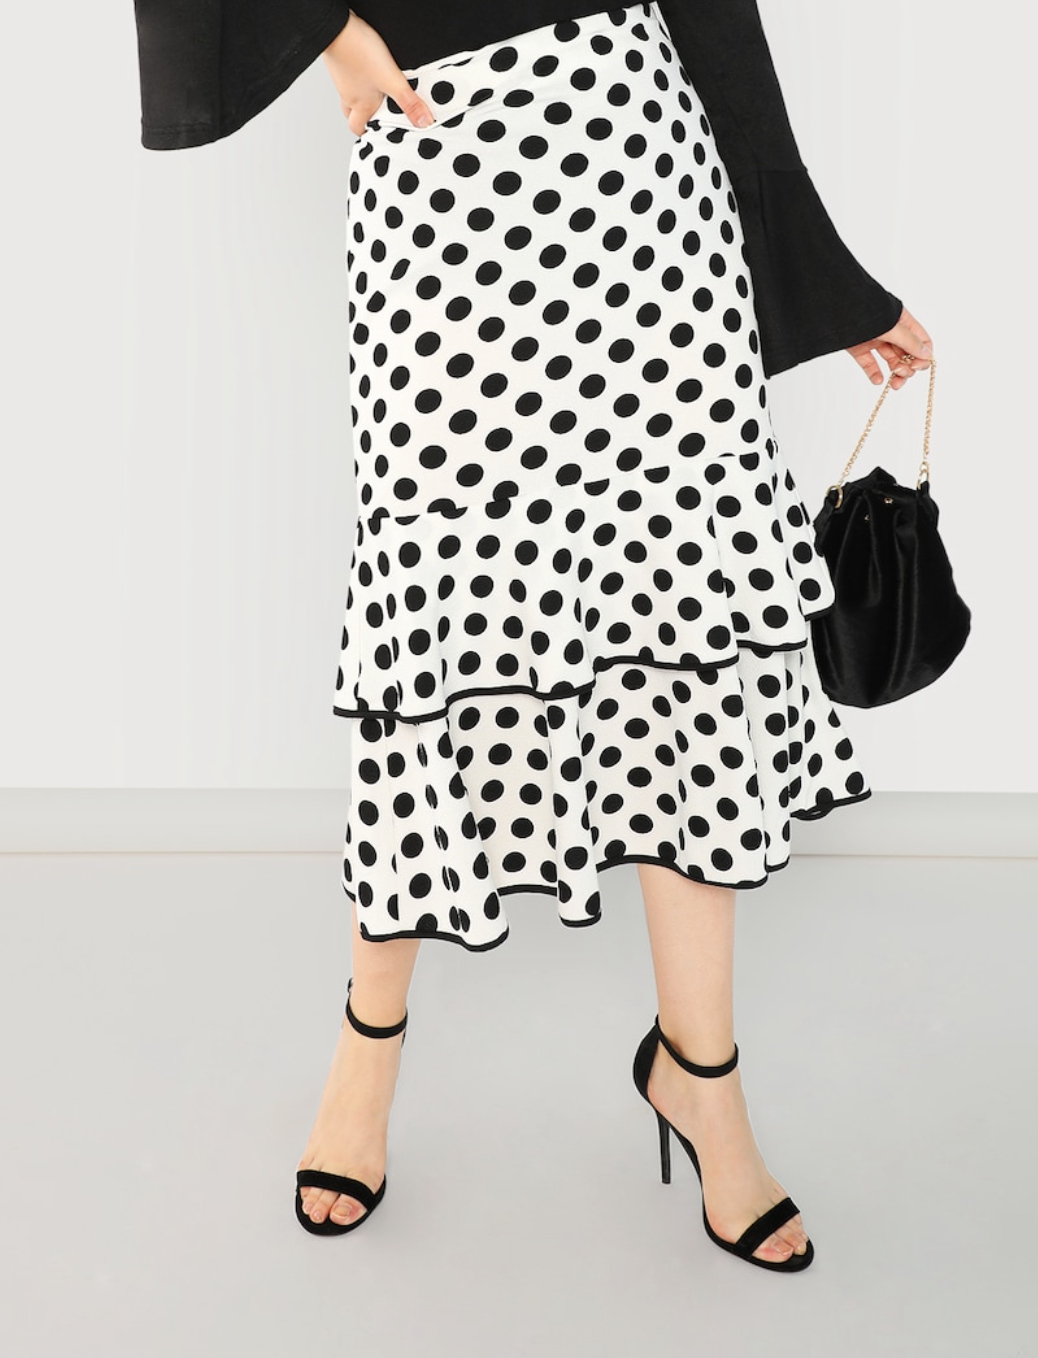 Plus Size Polka Dot Ruffle Skirt